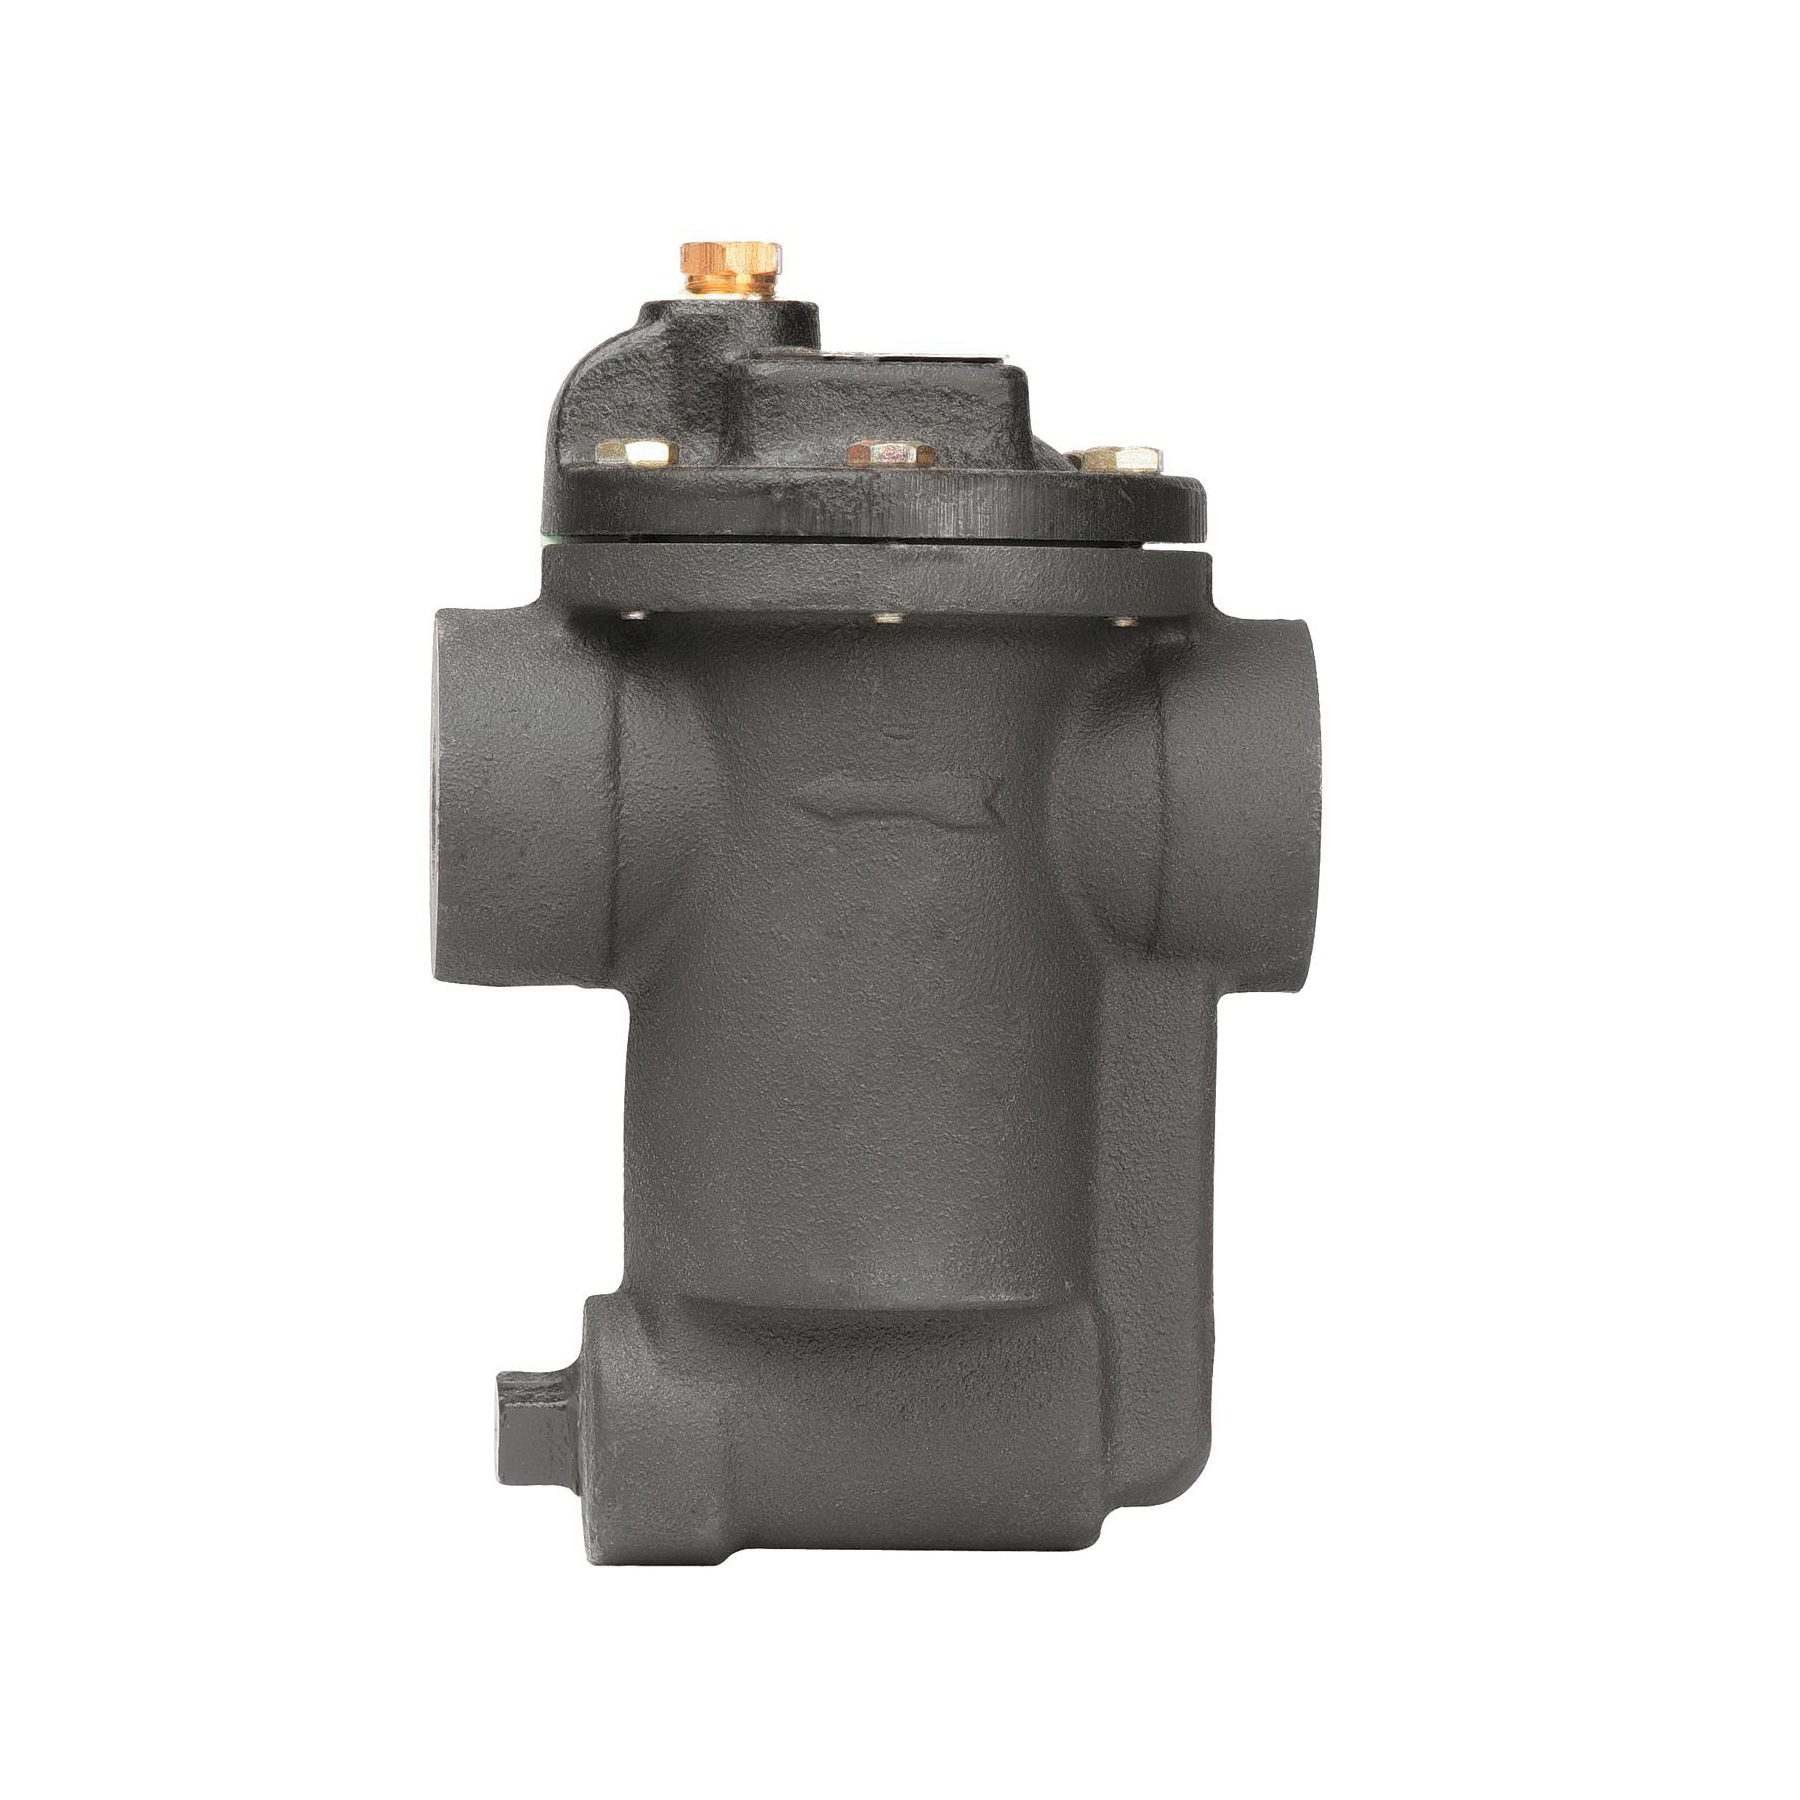 WATTS® 0039510 WIB, WIB-81-125 Inverted Bucket Steam Trap, 1/2 in, NPT, 406 deg F, 250 psi, Cast Iron, Import